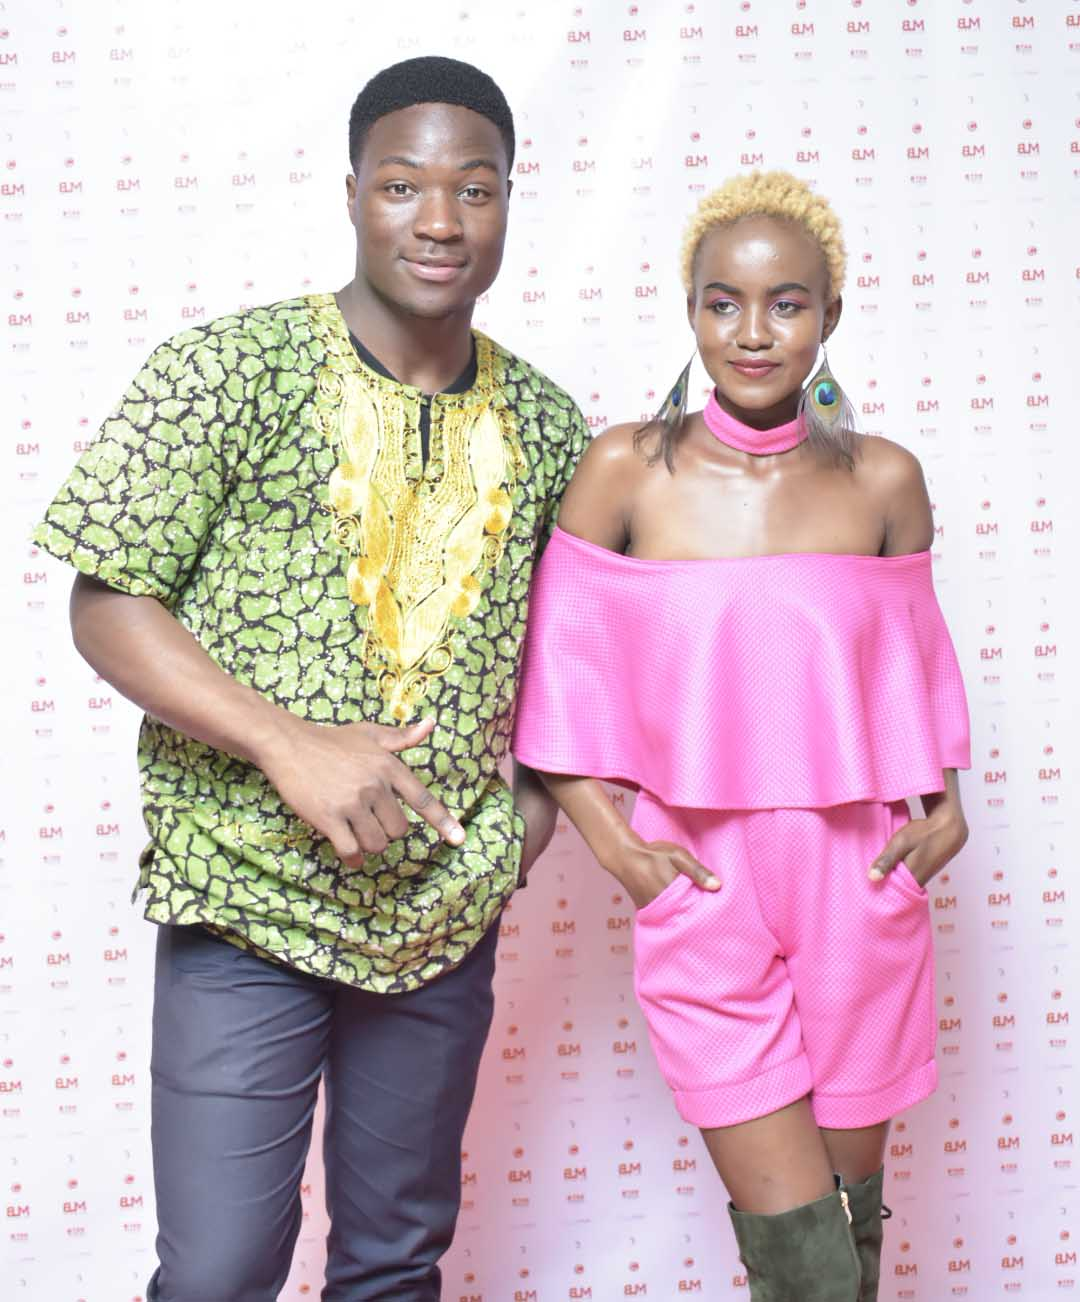 African Fashion Fusion 3: Sharon Madonna of Concept World and Clive Luppiizzy pose for a photo during the event.